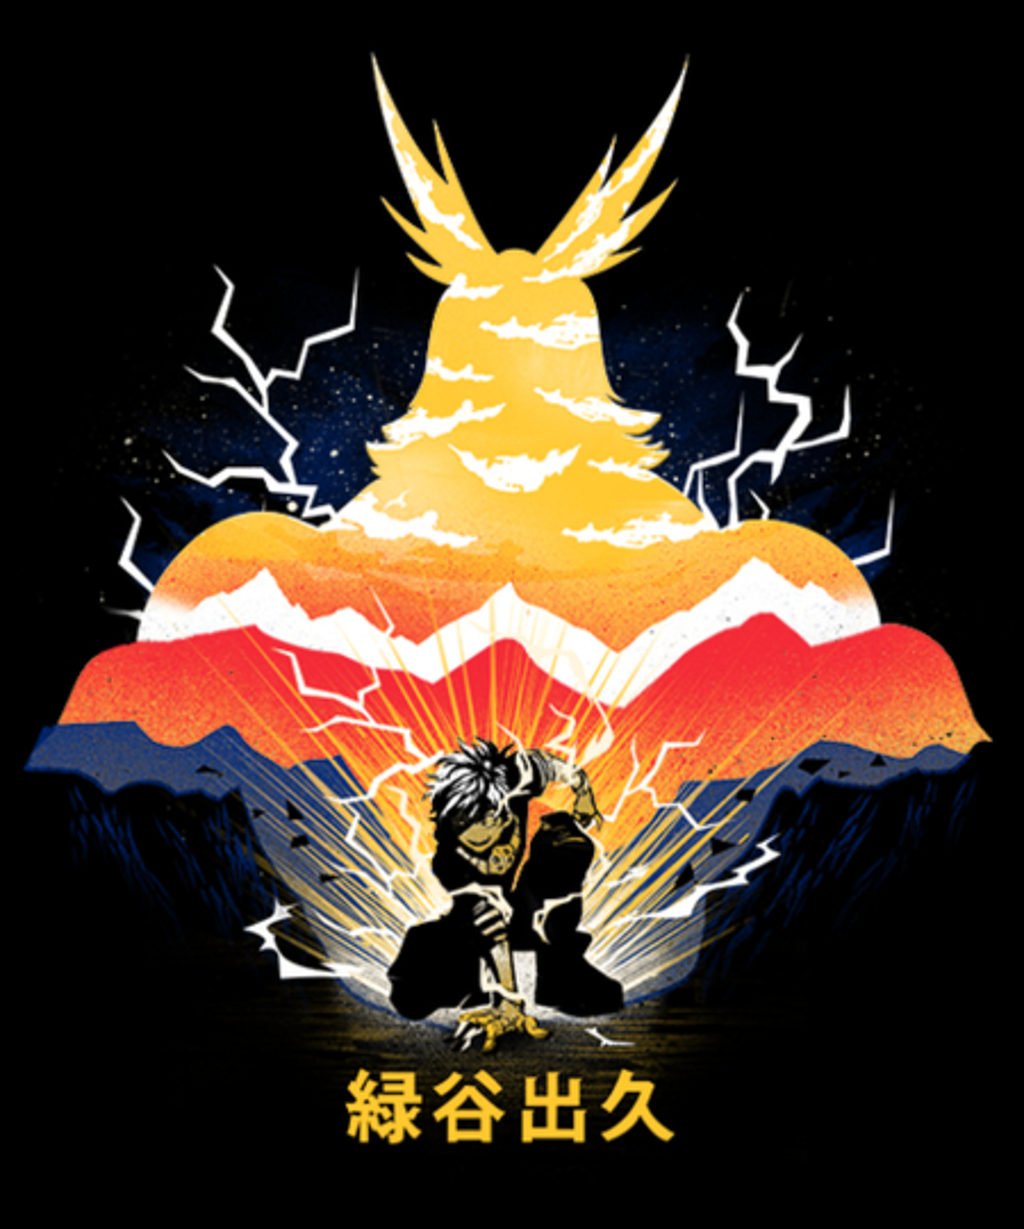 Qwertee: You can be a Hero